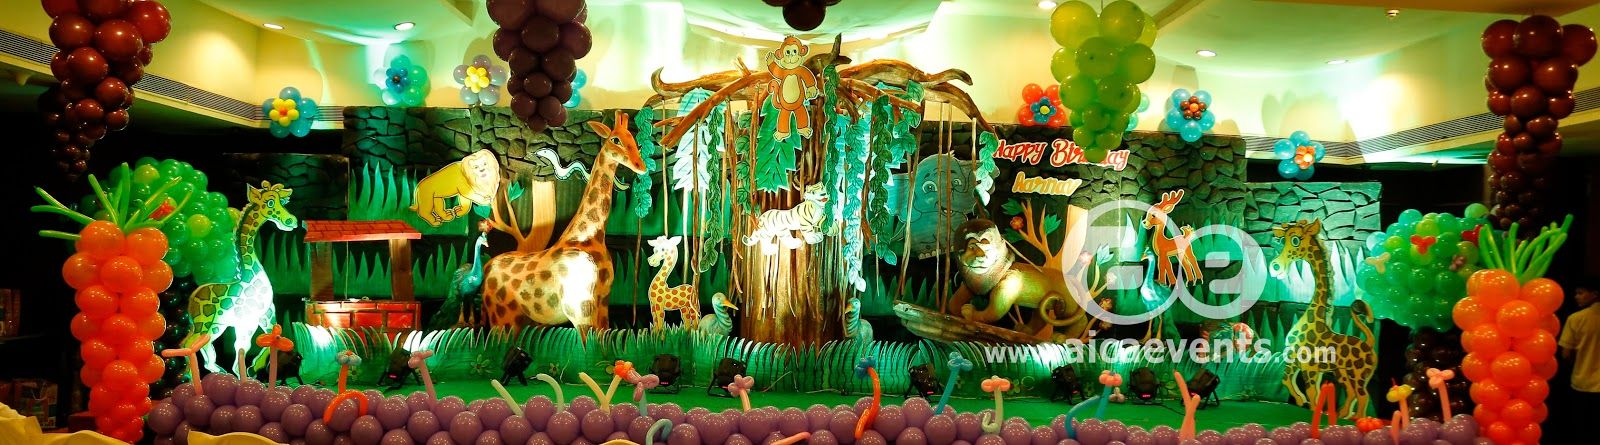 Jungle Theme Birthday Party Decoration Ideas Part - 39: Gather All The Lions, Tigers, And Bears In The Neighborhood And Throw Your  Child A Grrrrr-eat Birthday Party With Our Jungle Party Ideas!